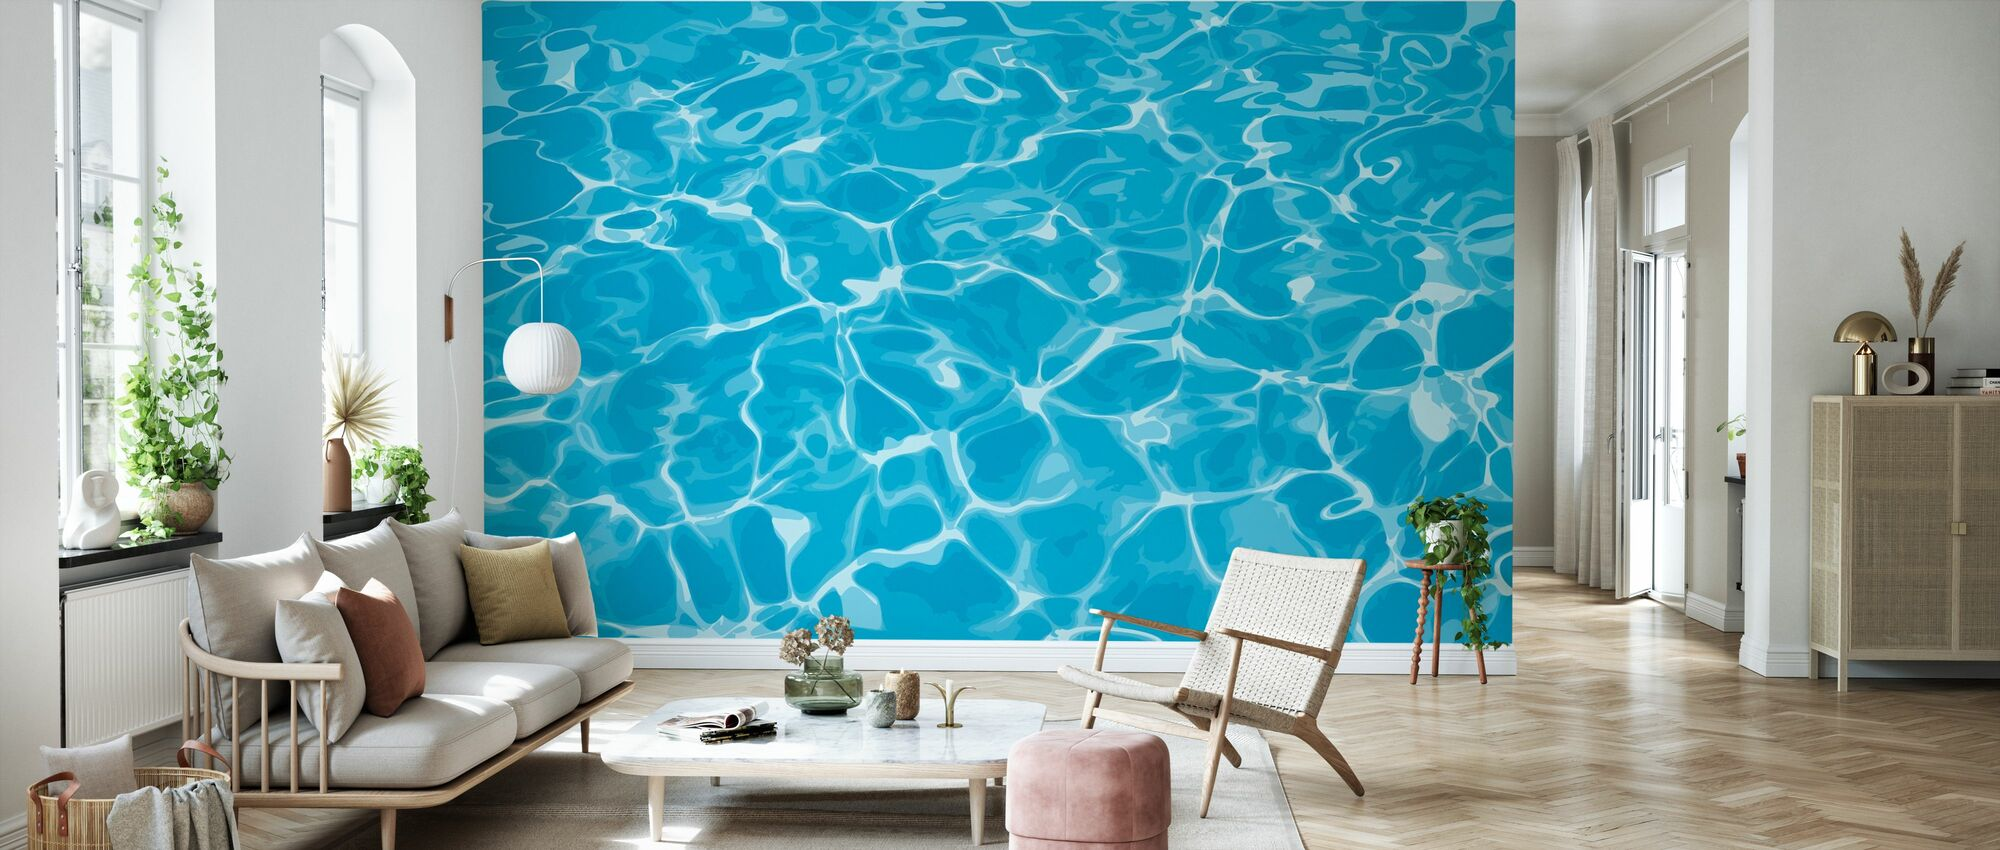 Reflection in Water - Wallpaper - Living Room